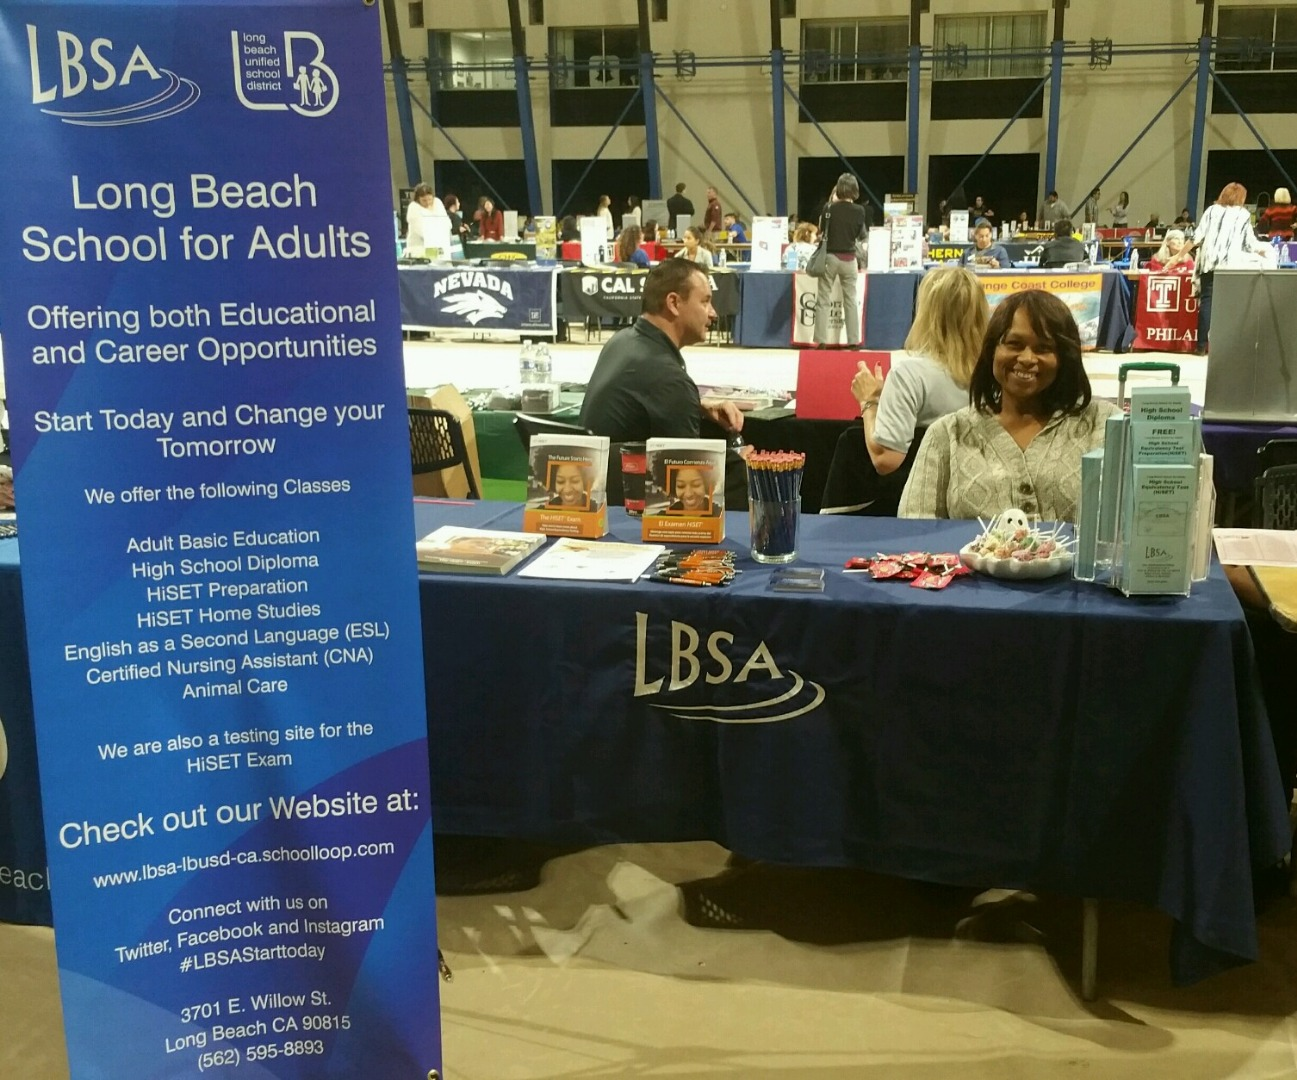 long beach school for adults table at event